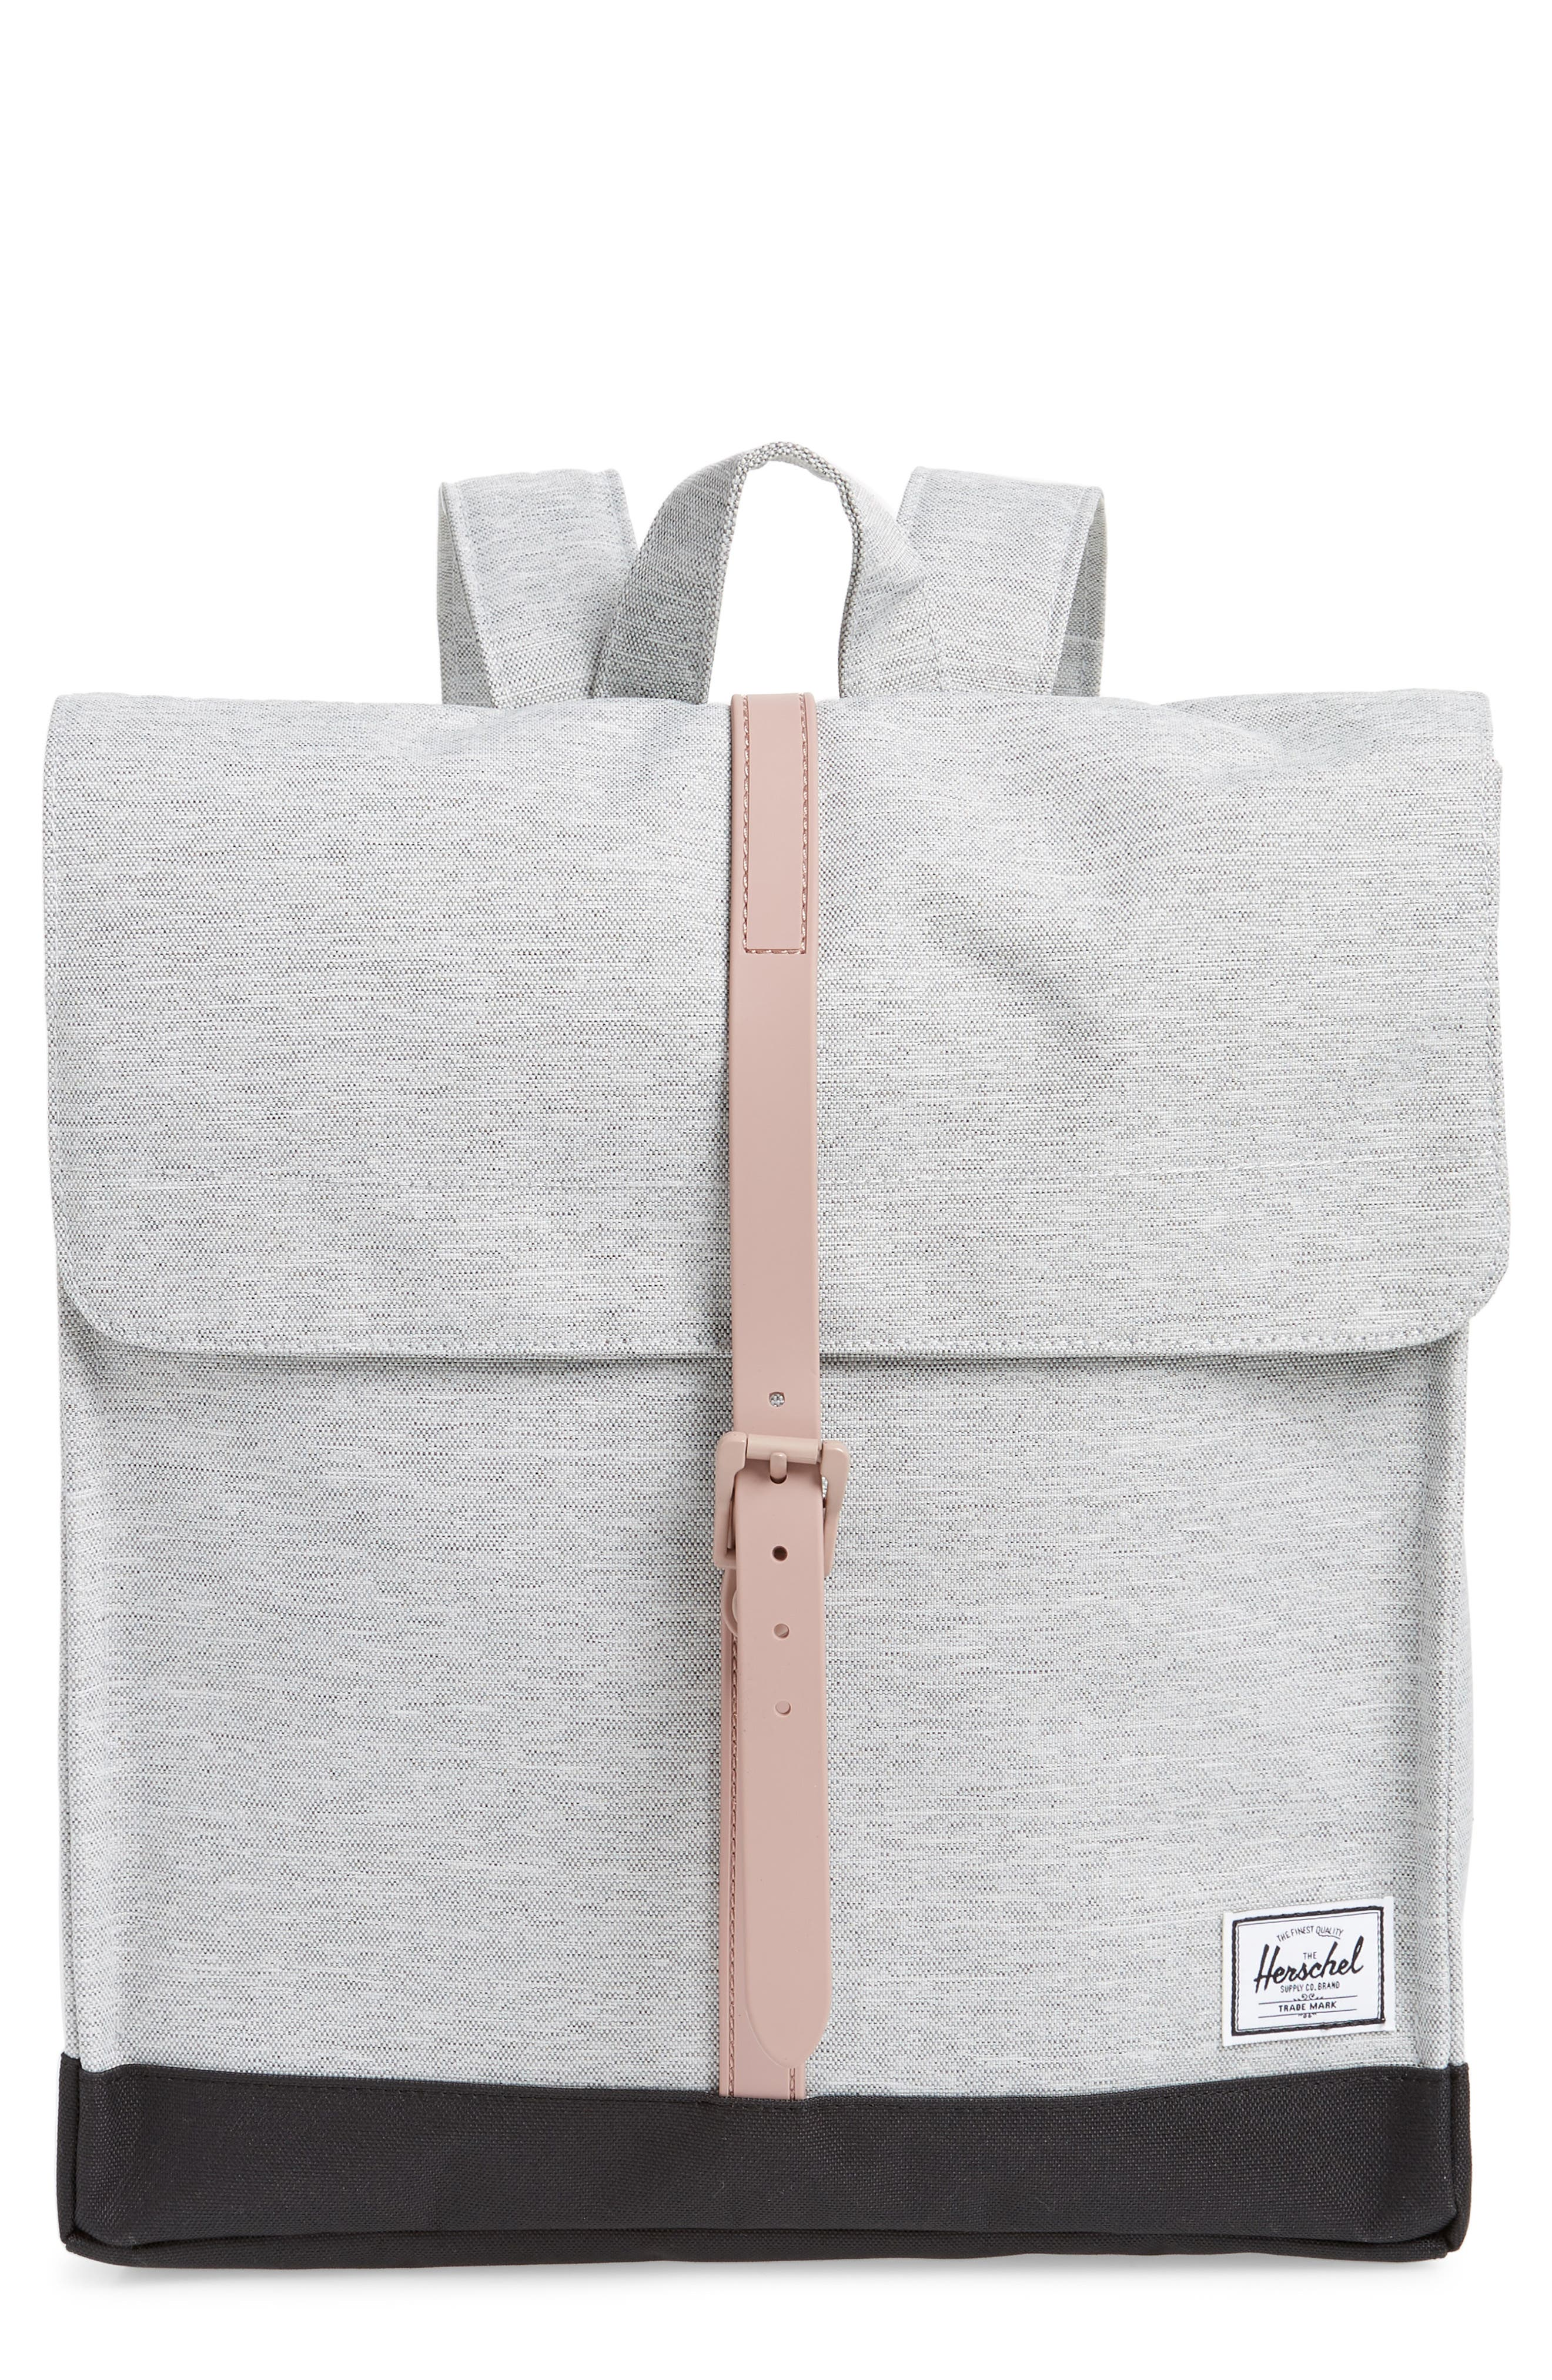 'City - Mid Volume' Backpack,                         Main,                         color, 024